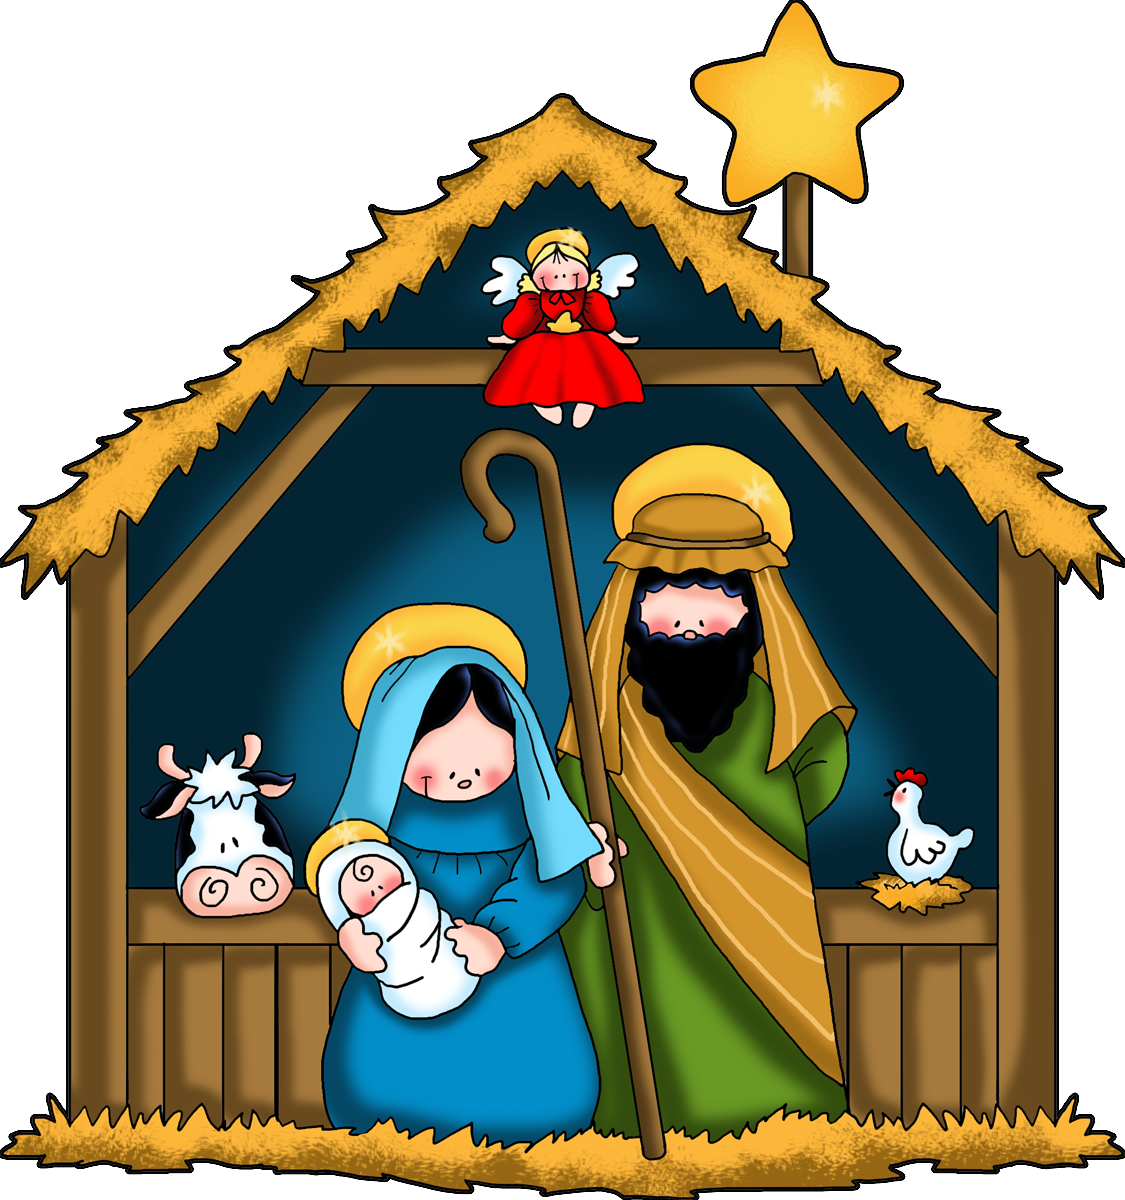 the nativity children free clip art google search kids rh pinterest com christmas nativity clipart black and white free christmas nativity border clipart